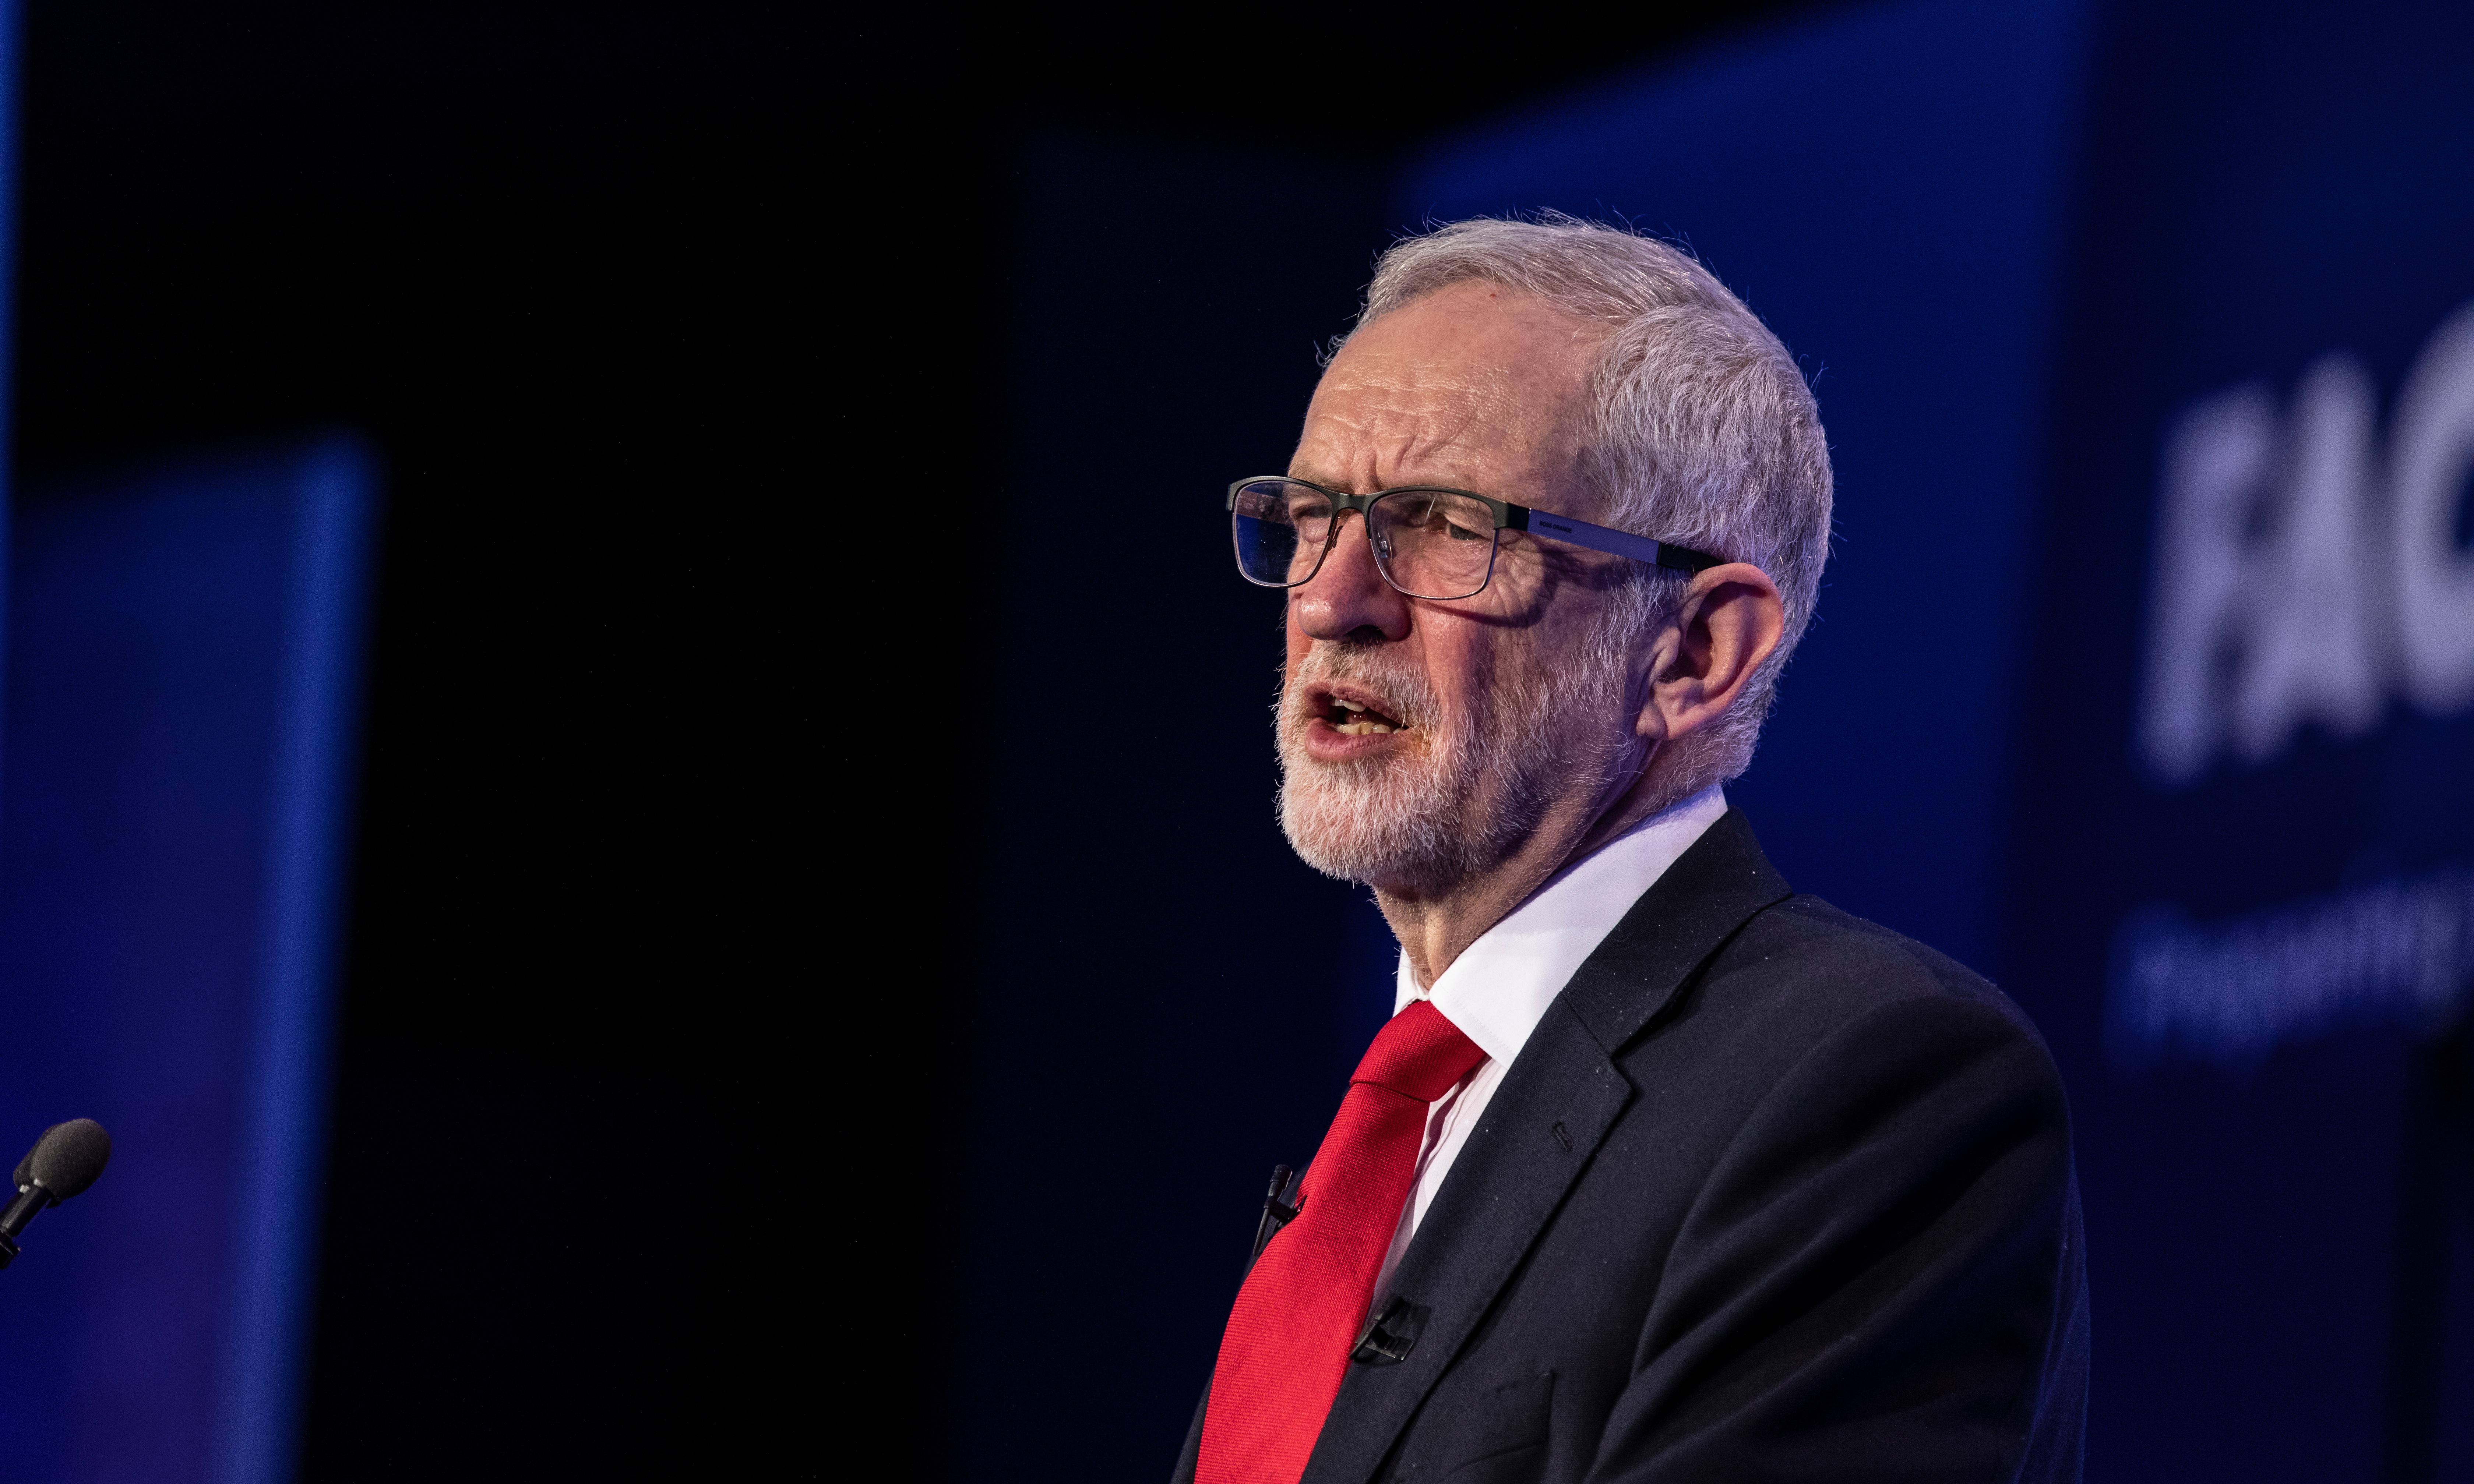 Jeremy Corbyn: MPs who quit were elected on 2017 manifesto